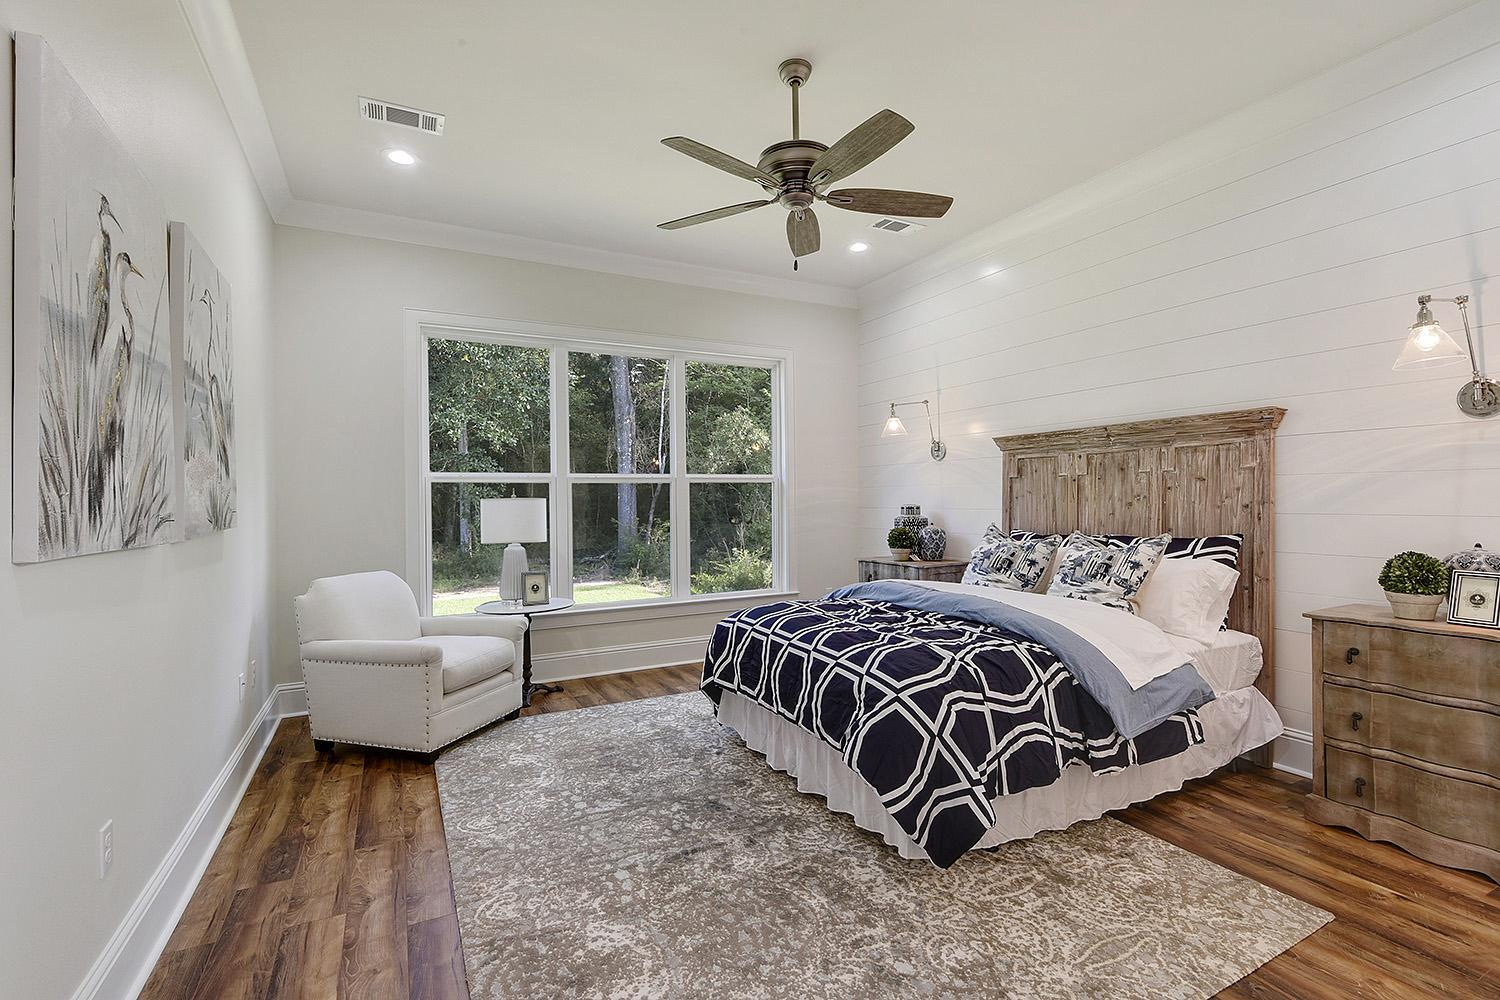 Bedroom featured in the Andre By Highland Homes in New Orleans, LA